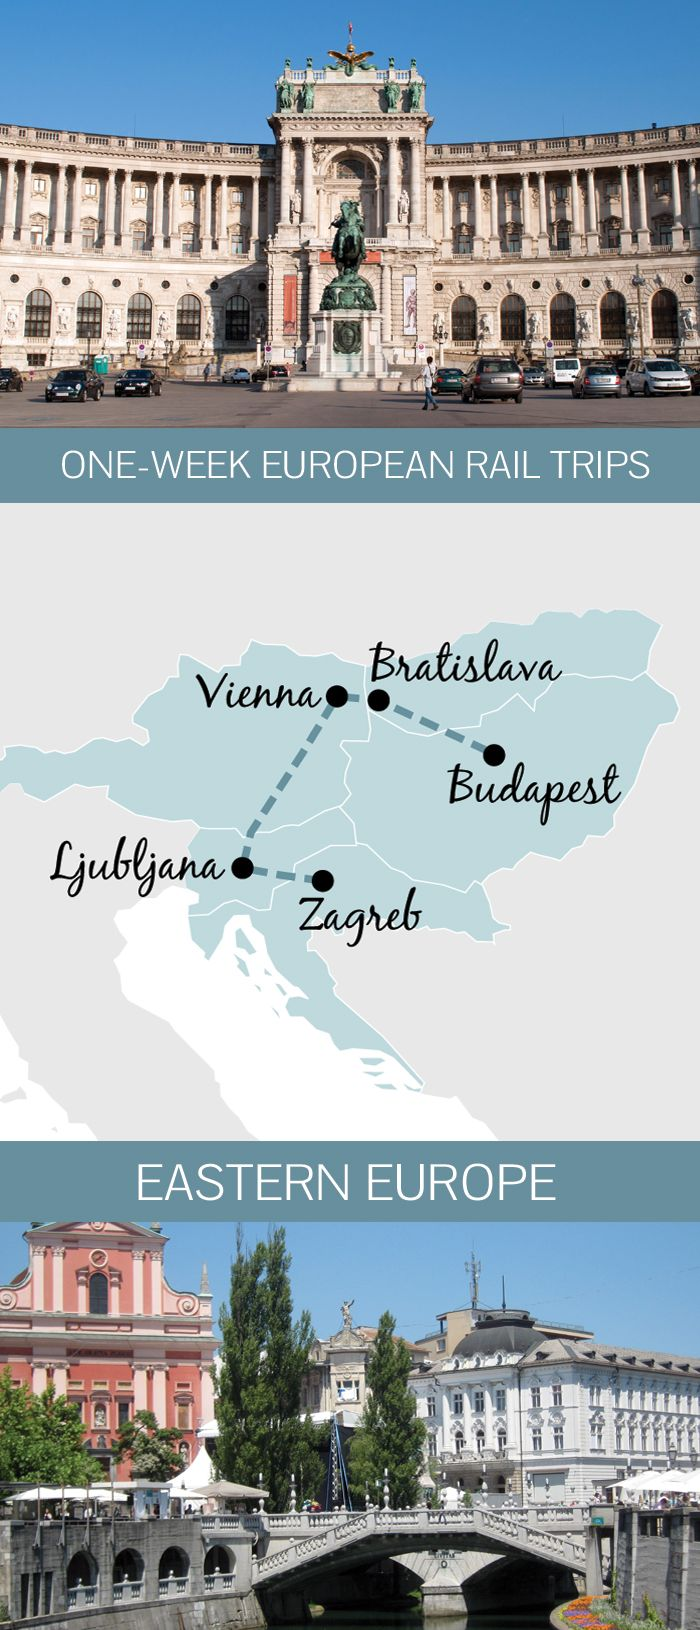 European Holidays that You Need to Have on Your Bucket List You dont need months to spare to see Europe by train – a one-week Eastern European rail itinerary from Budapest to Zagreb